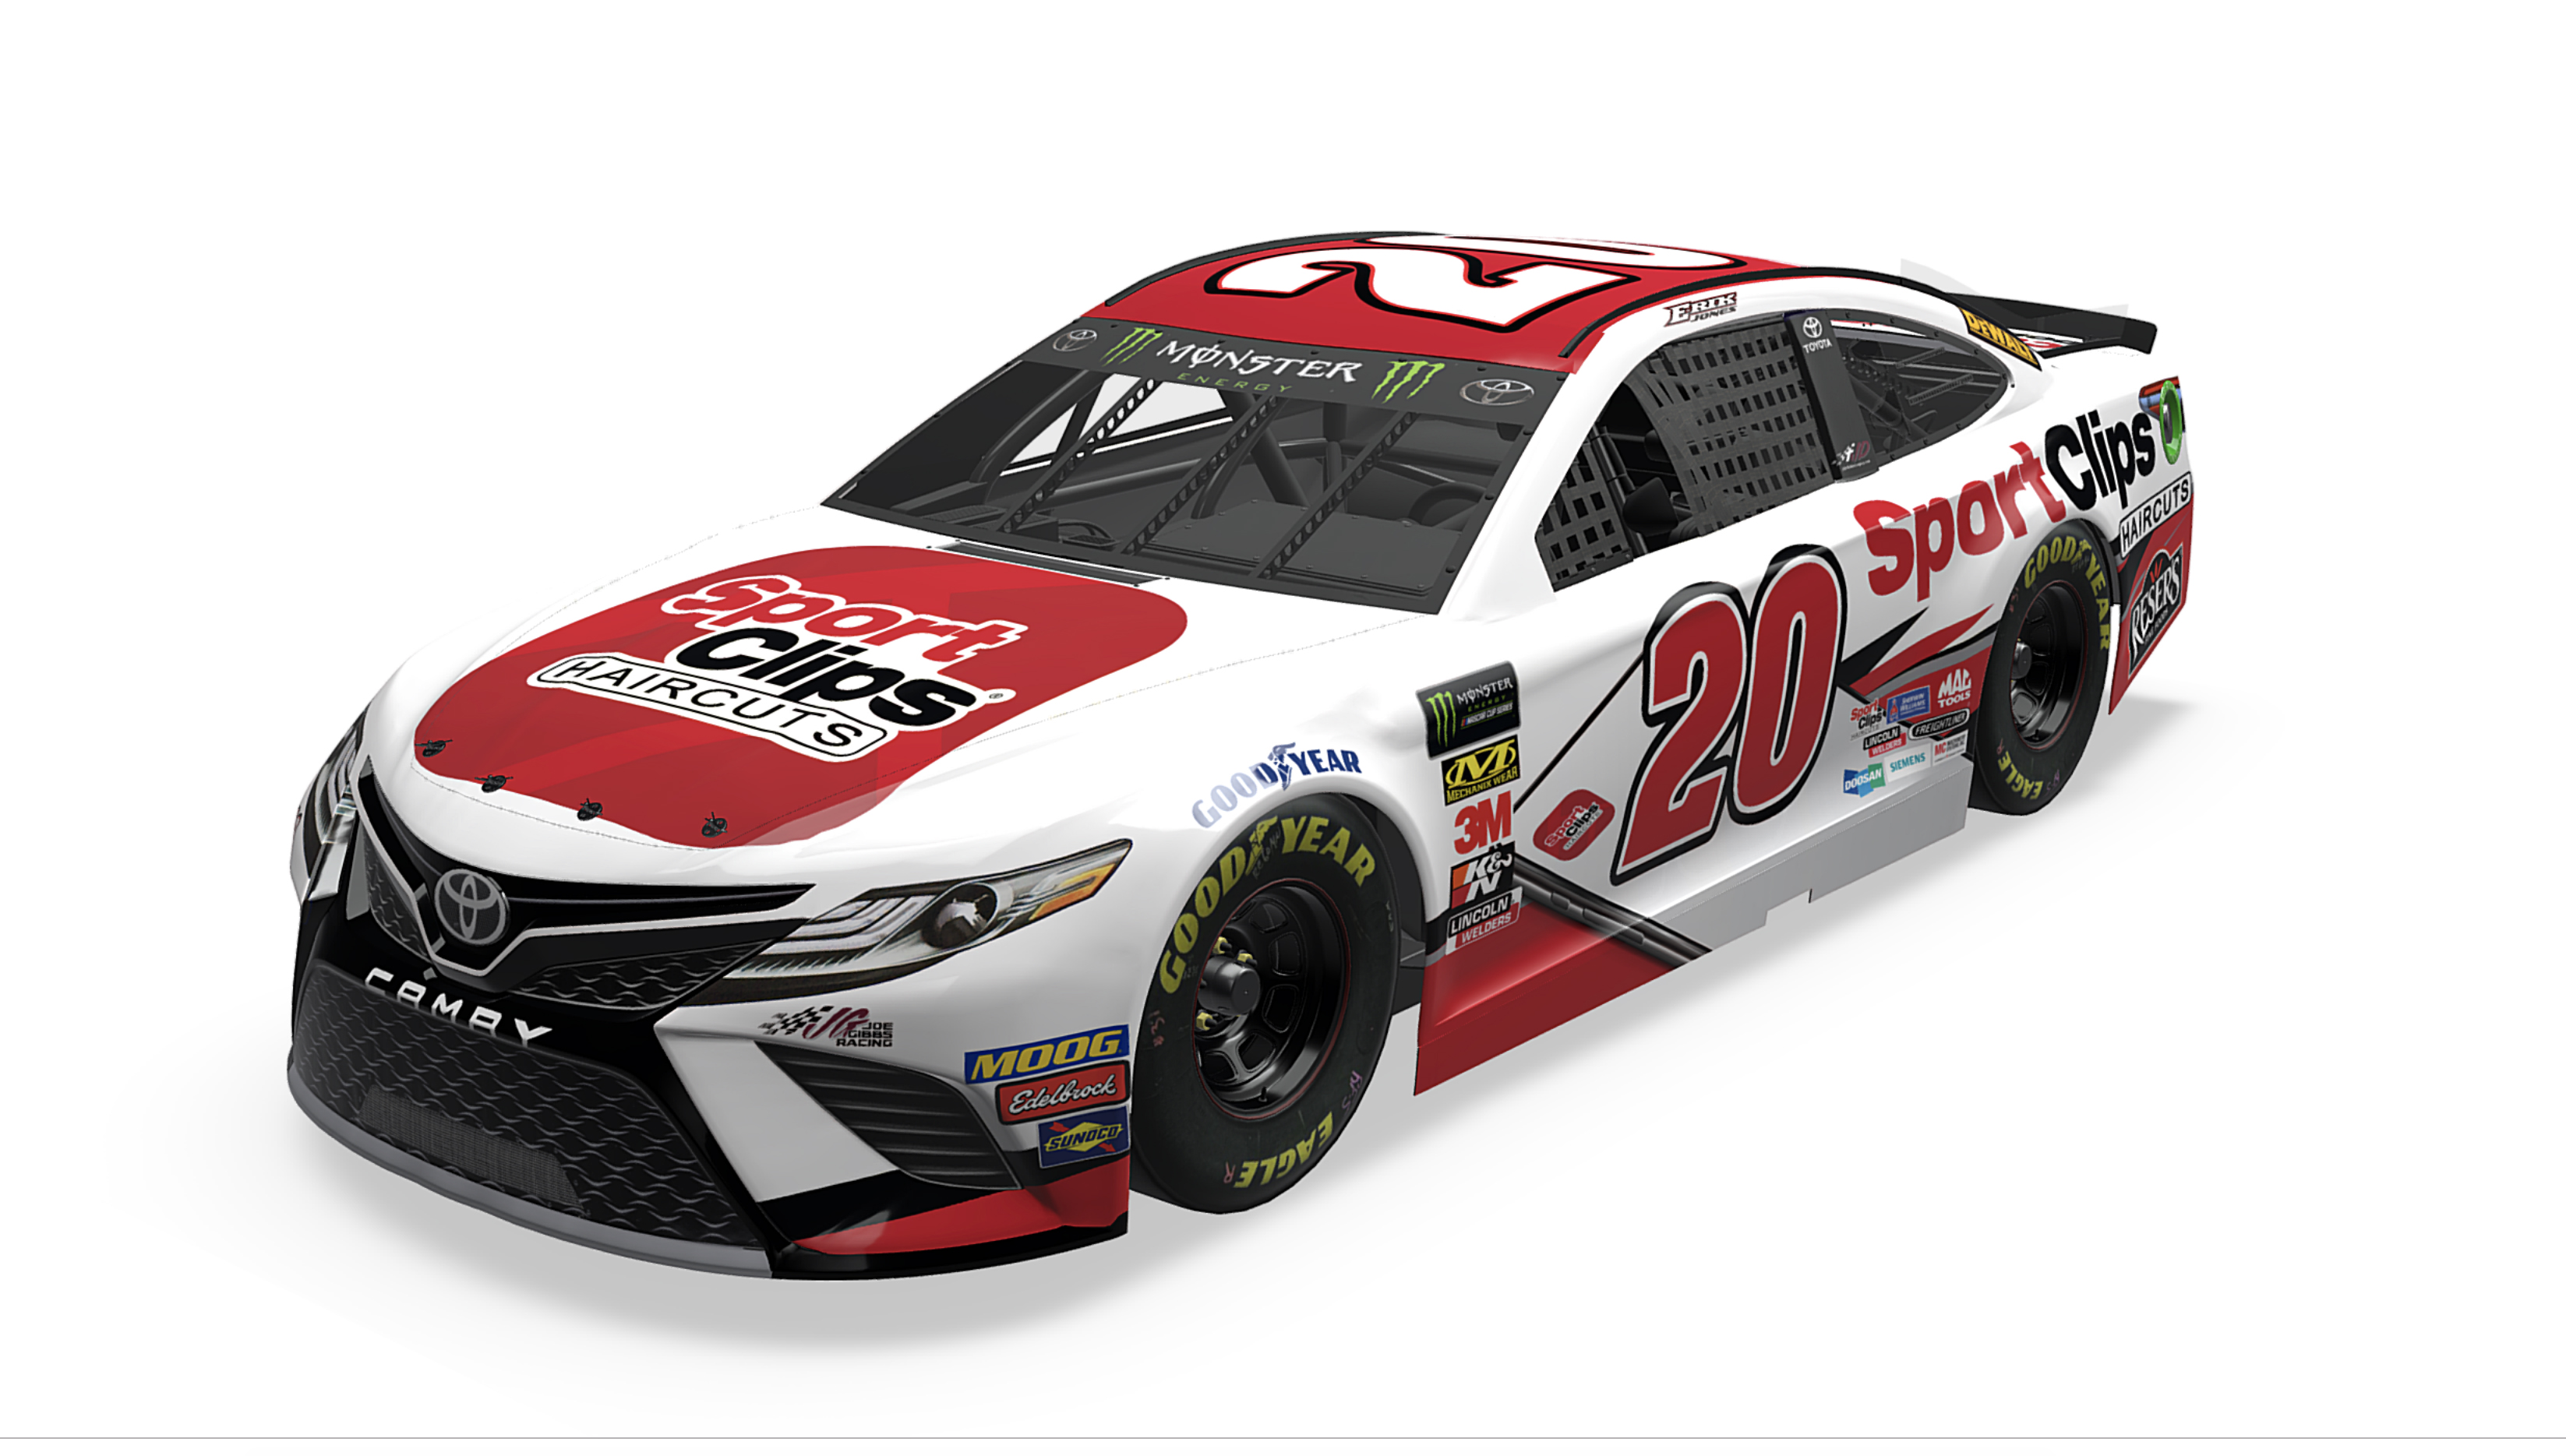 Sport Clips Racing NASCAR race car